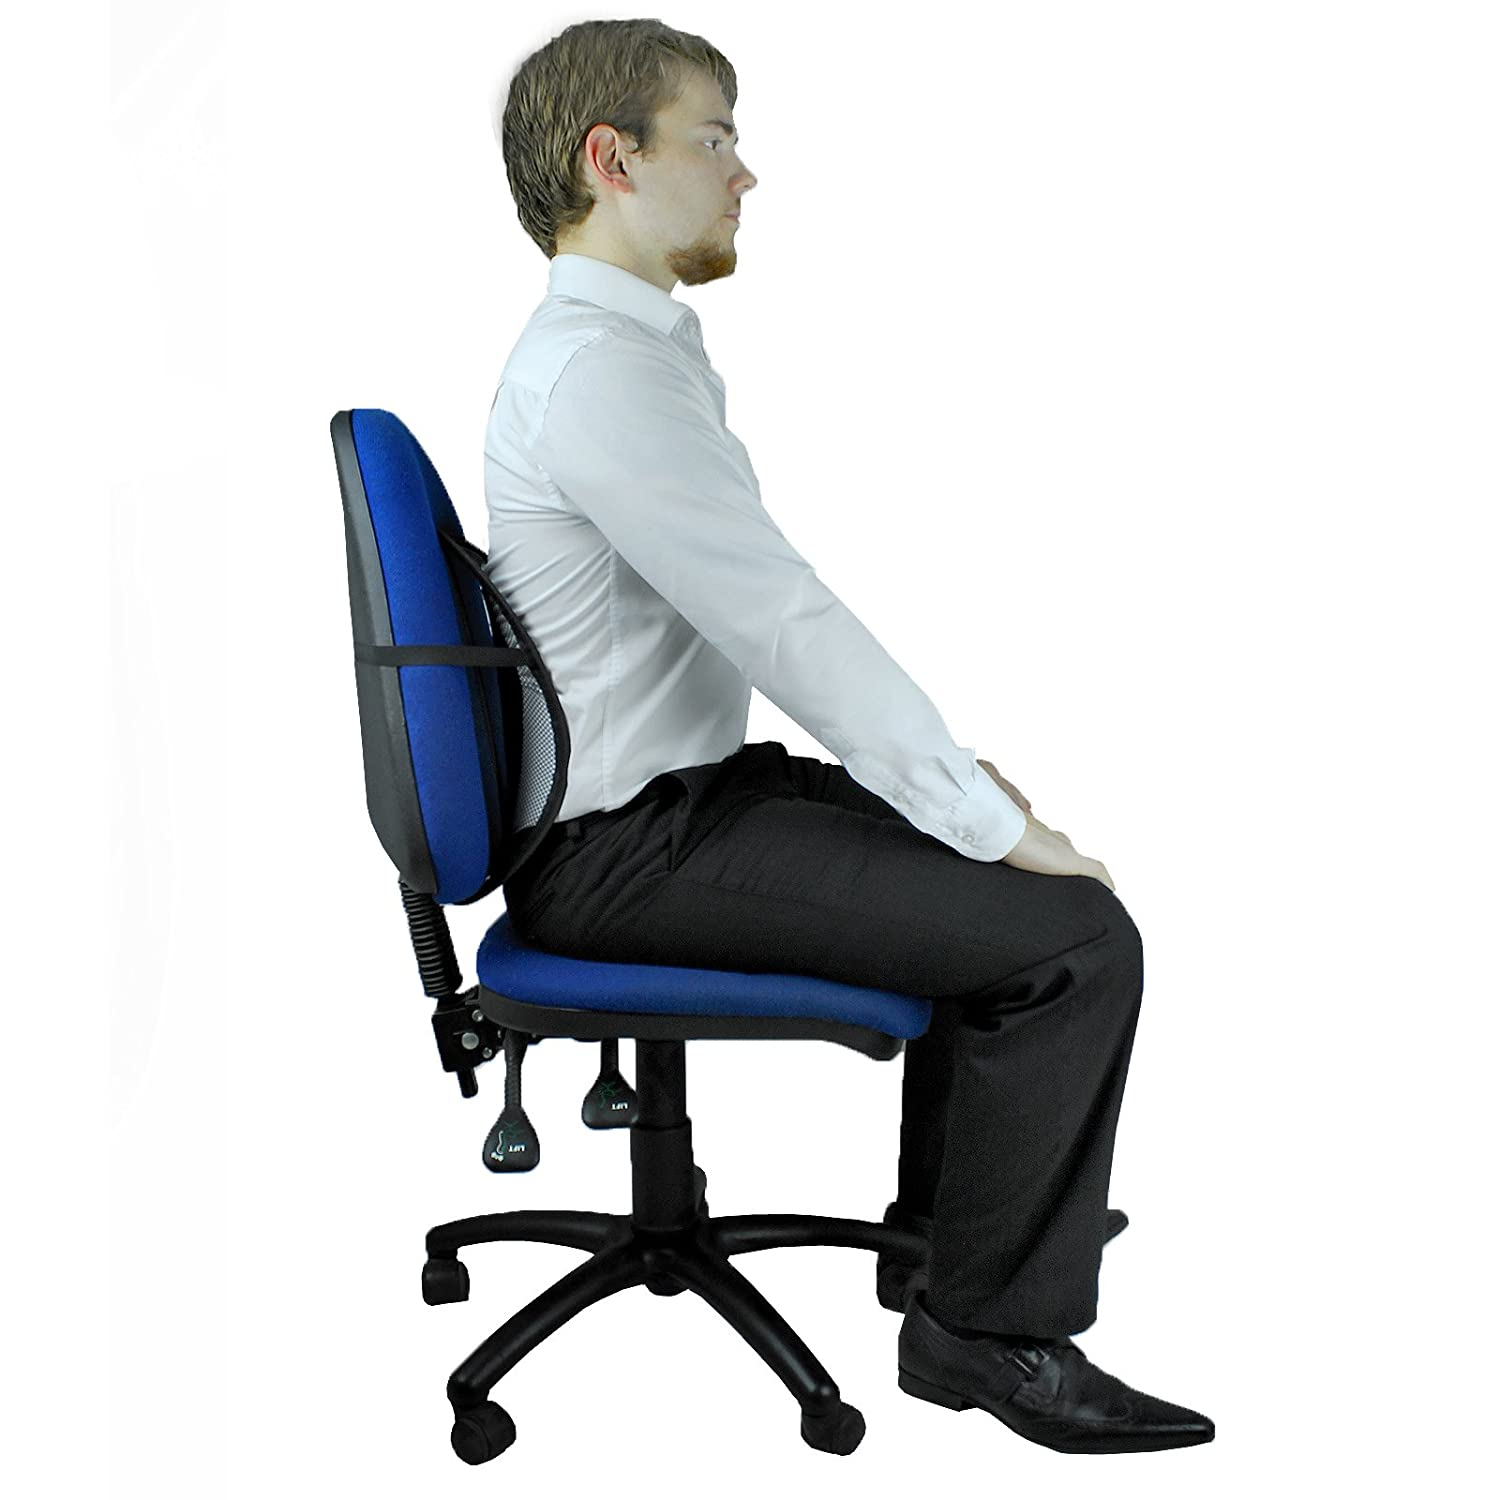 Buy lumbar support for chair